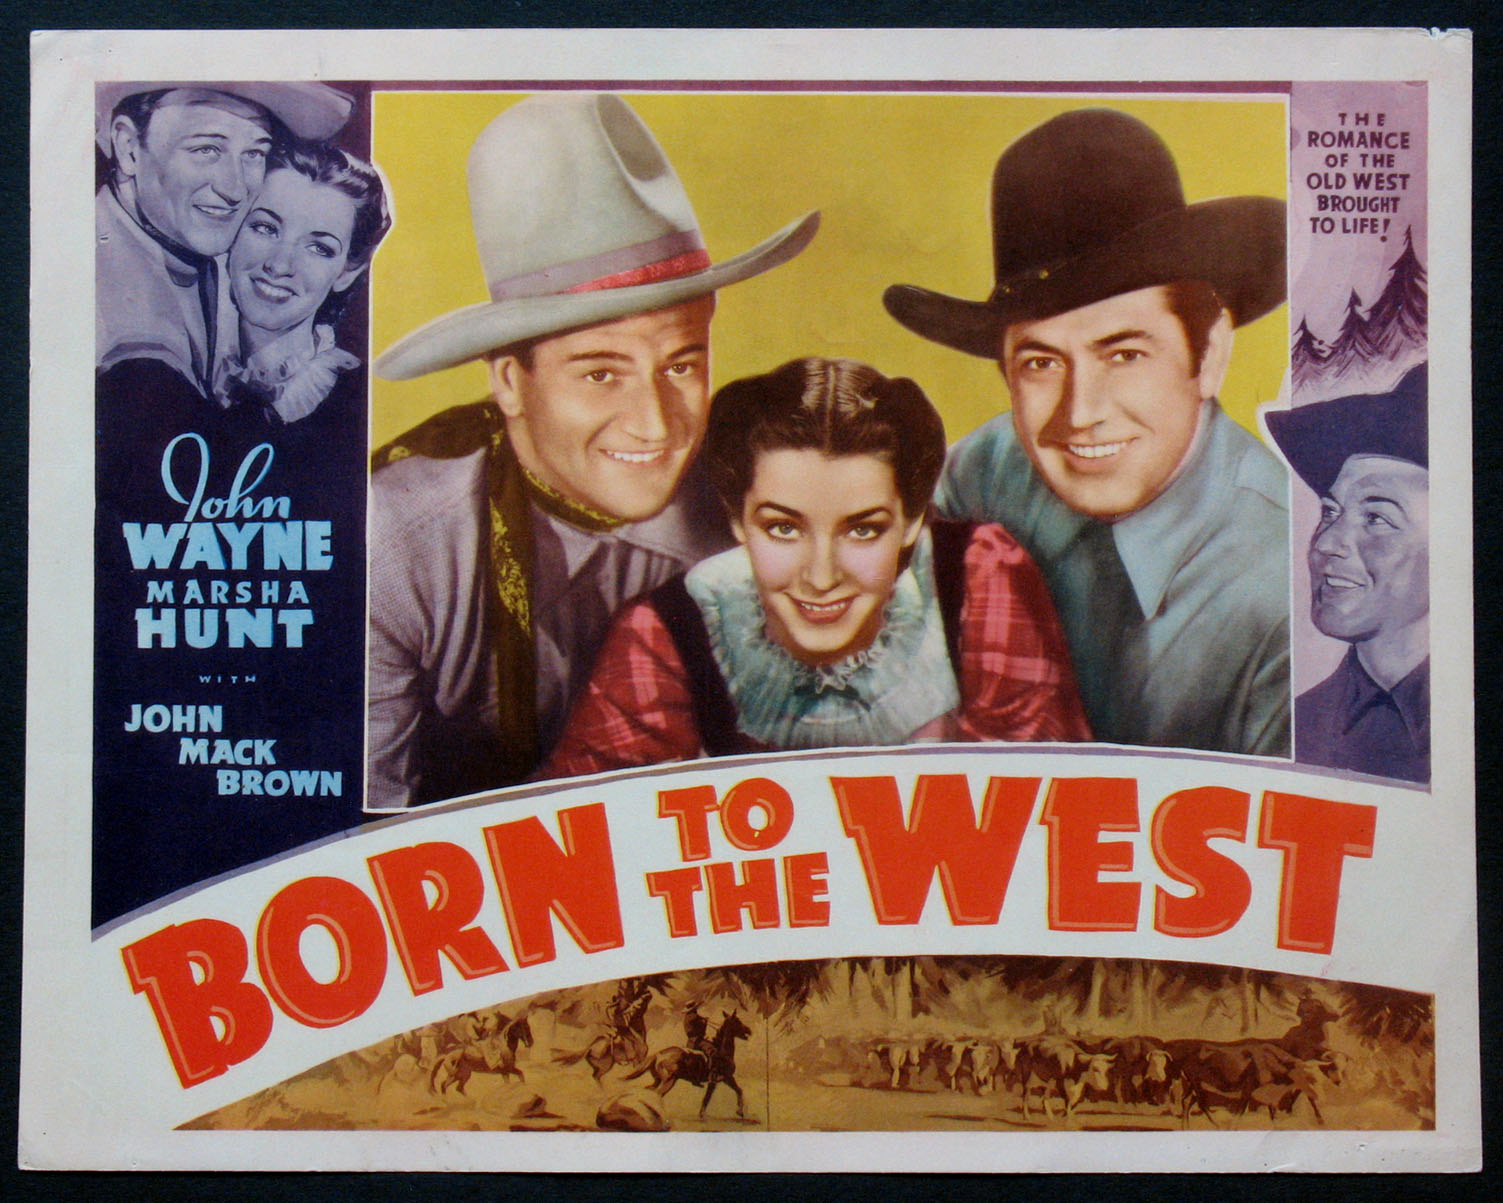 BORN TO THE WEST @ FilmPosters.com